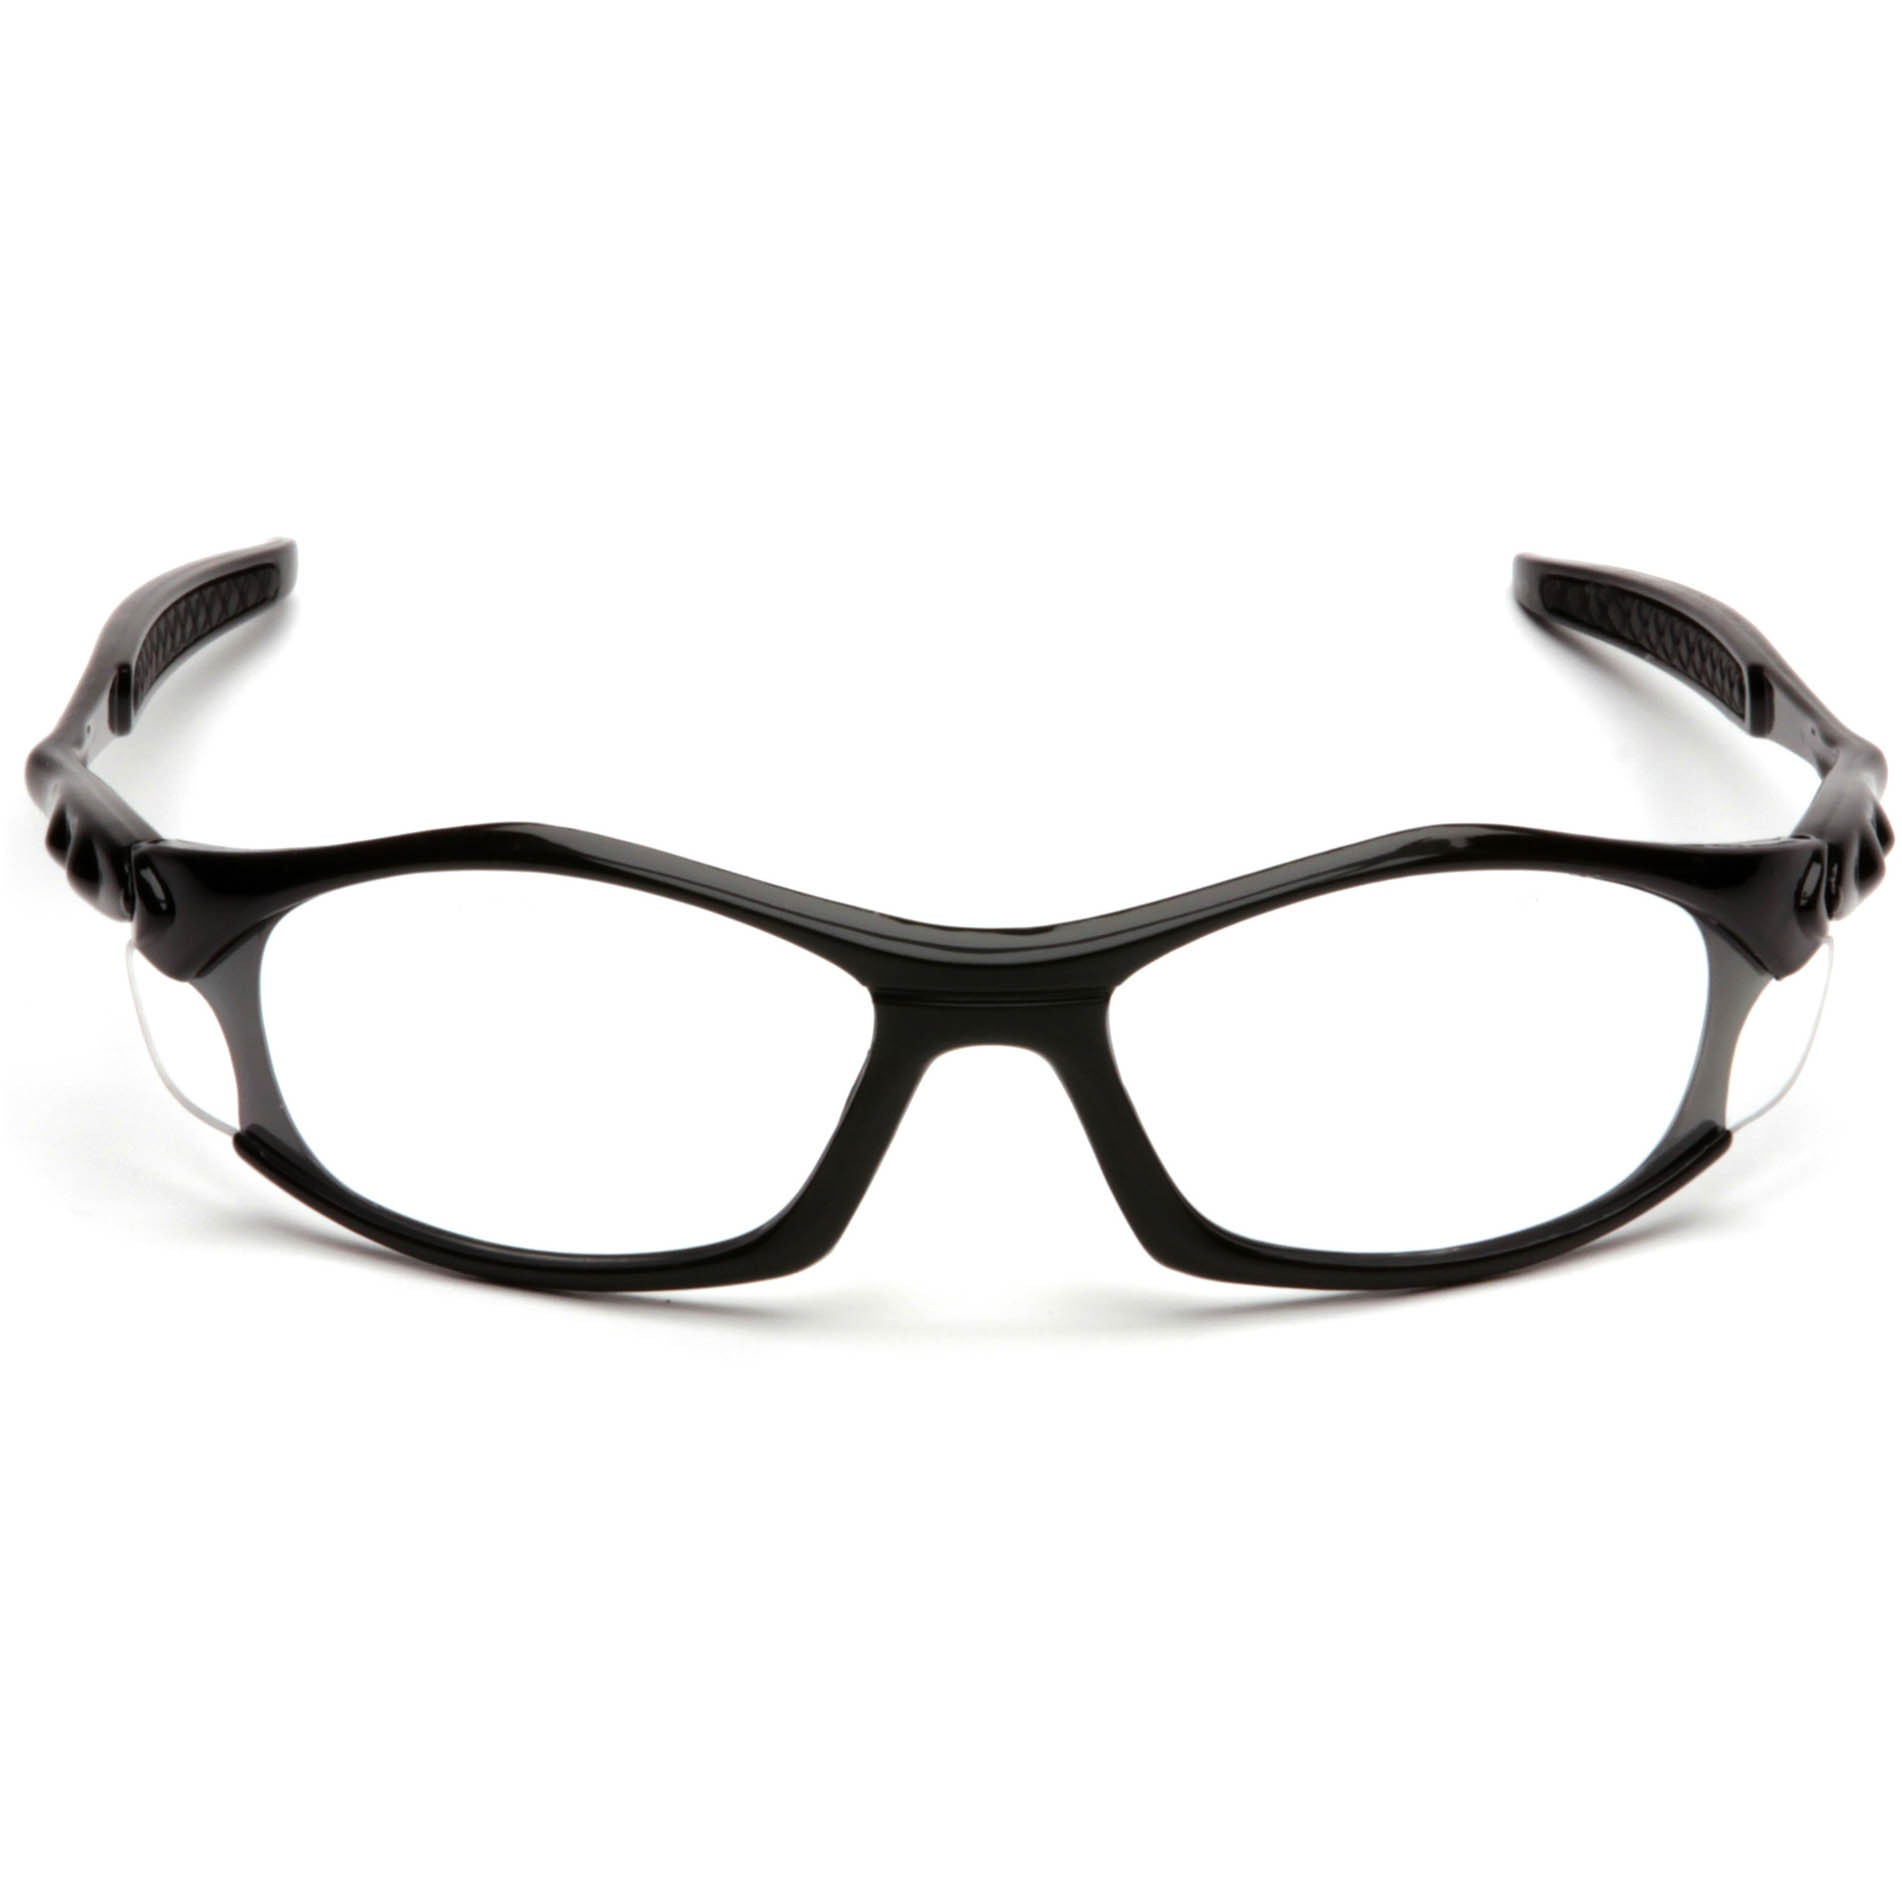 Black Frame Glasses With Clear Lenses : Pyramex Solara Safety Glasses - Black Frame - Clear Lens ...